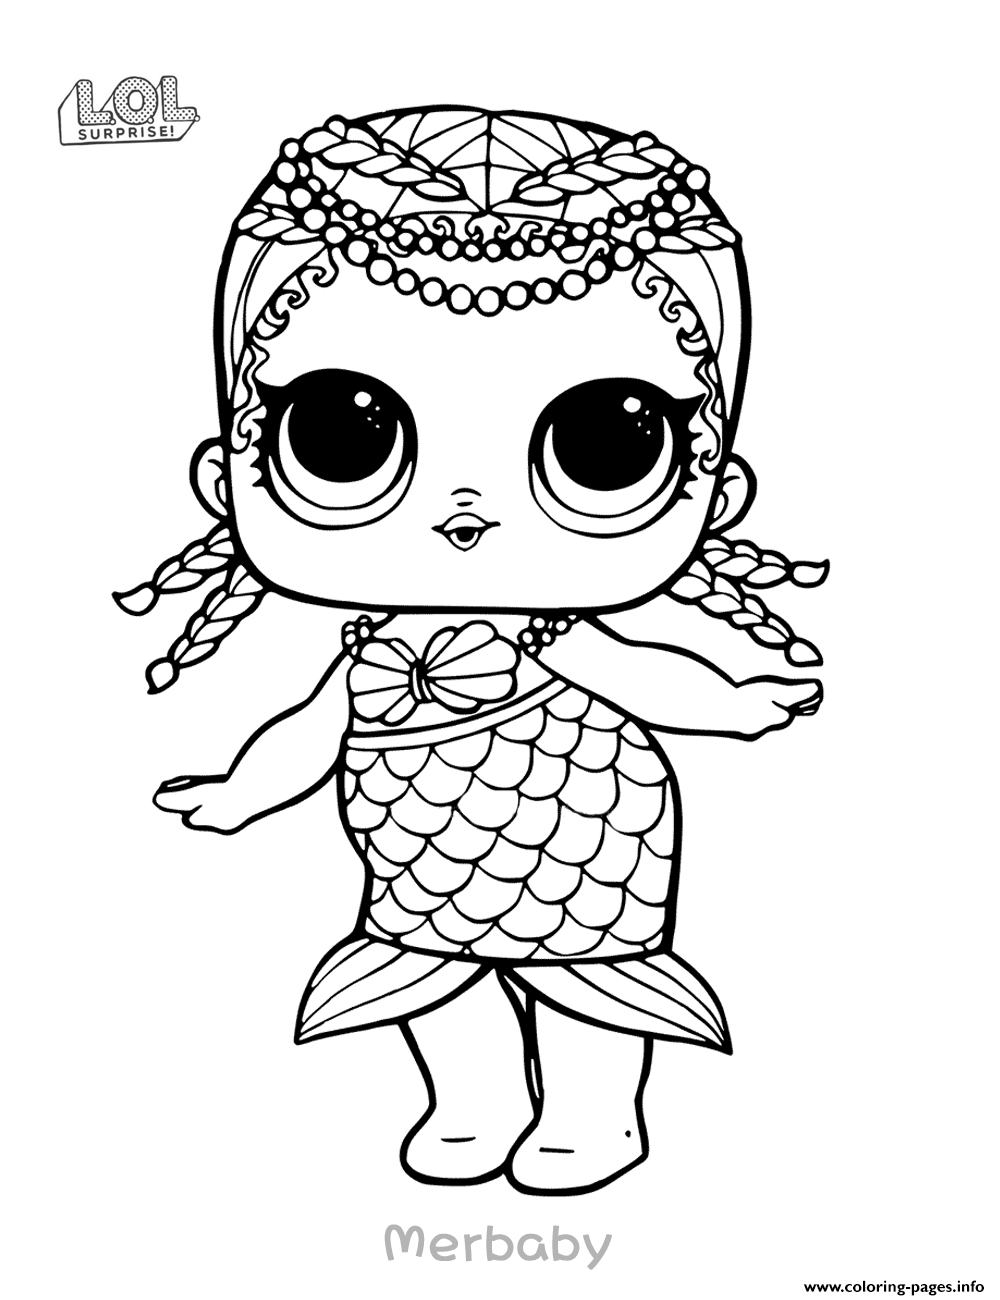 Print Mermaid Lol Surprise Doll Merbaby Coloring Pages L S